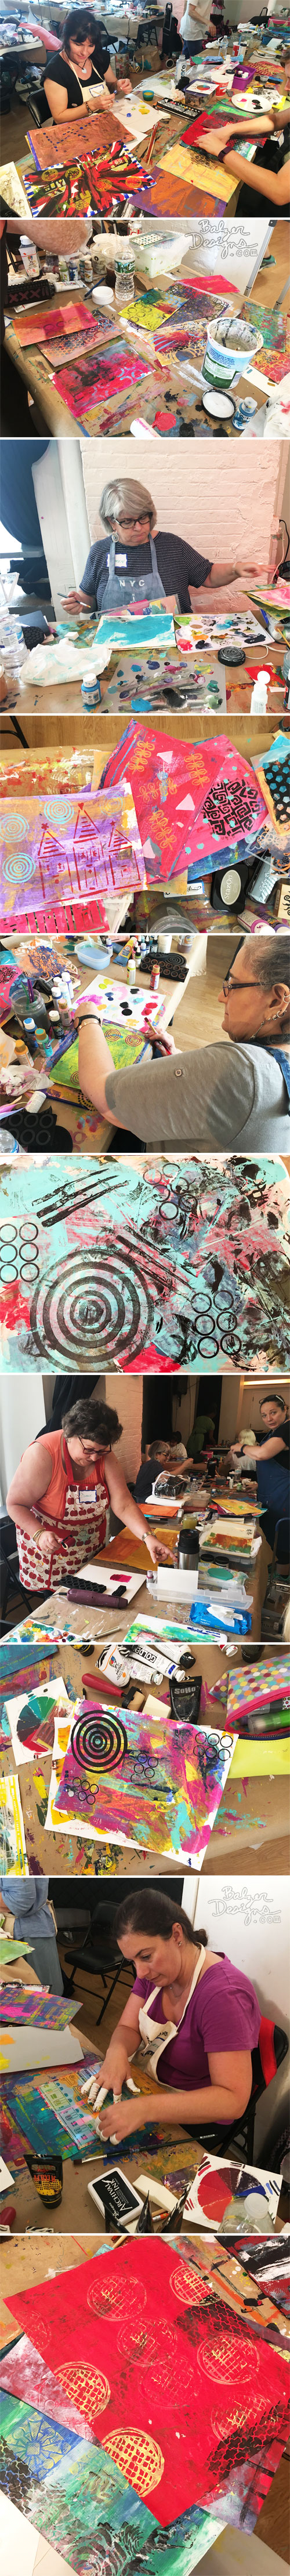 From the Balzer Designs Blog: Pamphlet Journal Class at the Ink Pad